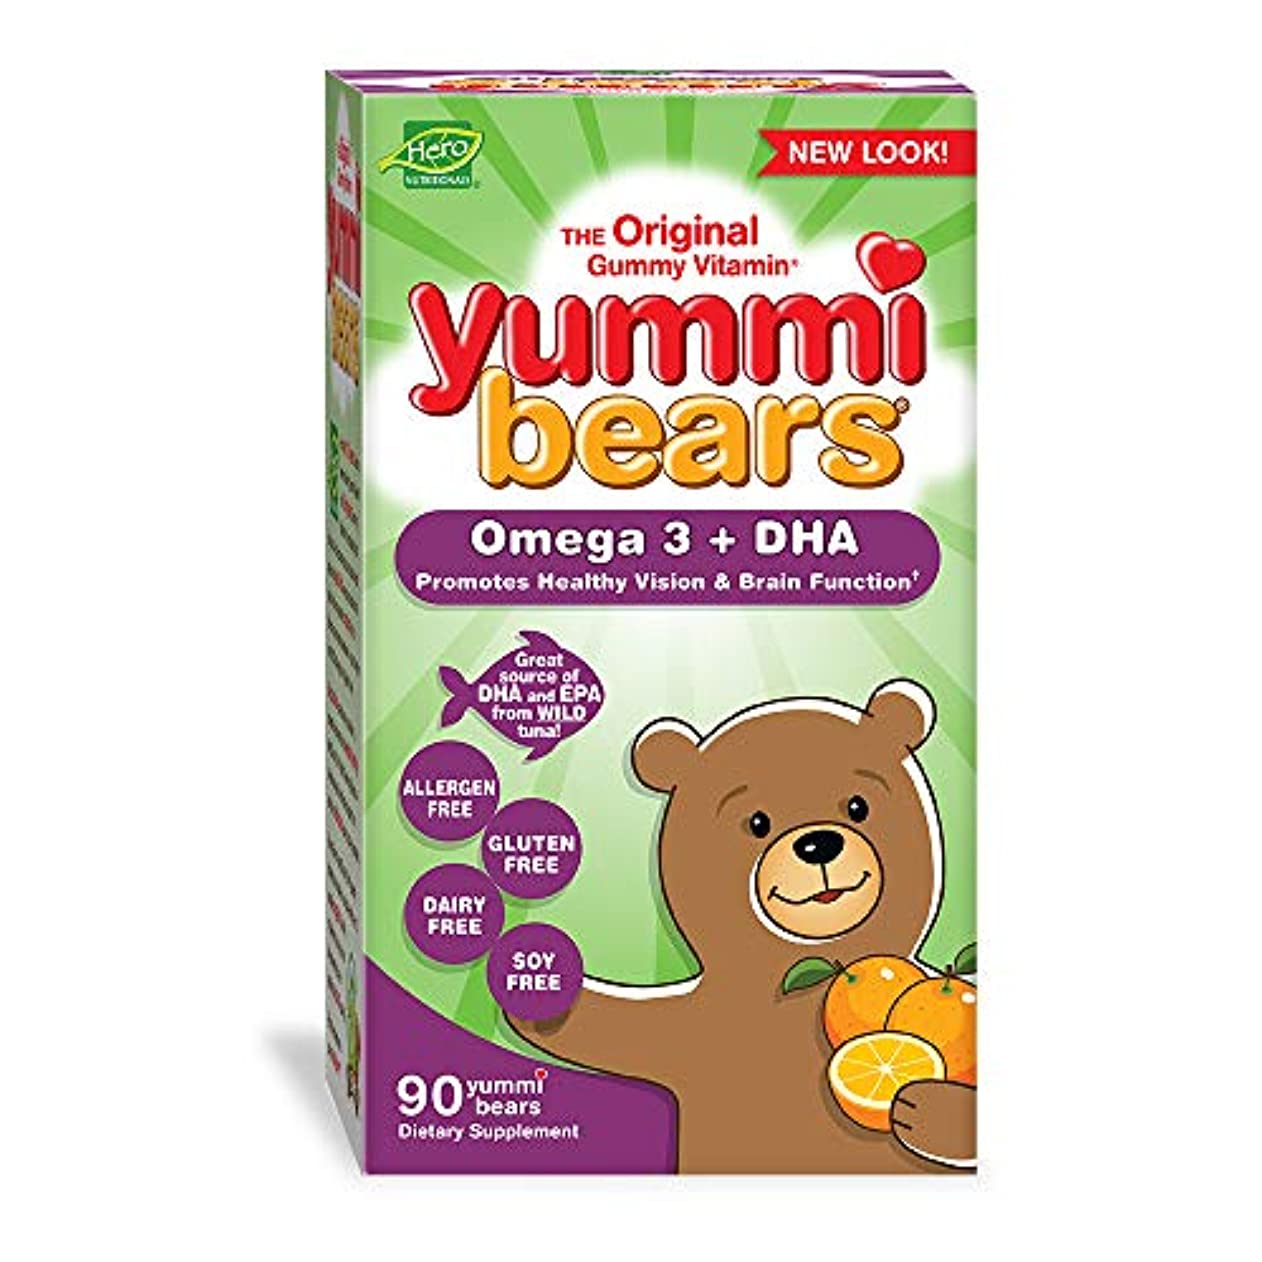 数学的な適合する苛性海外直送品 Yummi Bears (Hero Nutritional Products) Yummi Bears DHA, 90 CT